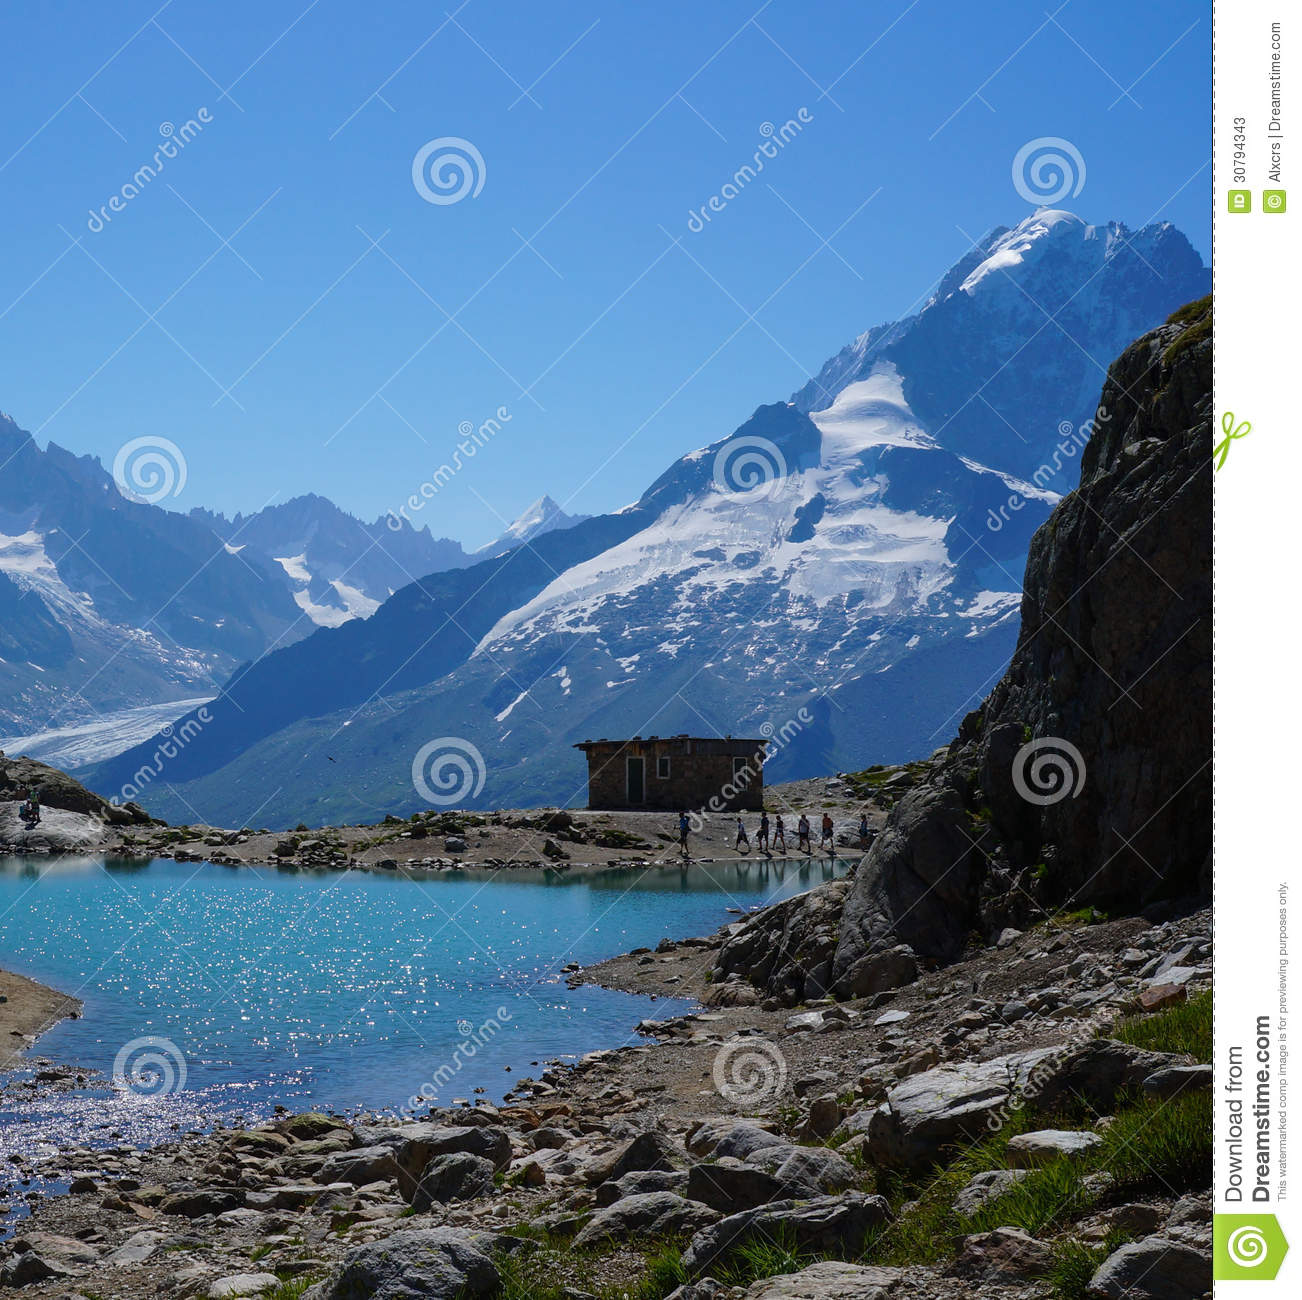 Beautiful Blue Lake Images & Stock Pictures. Royalty Free ...